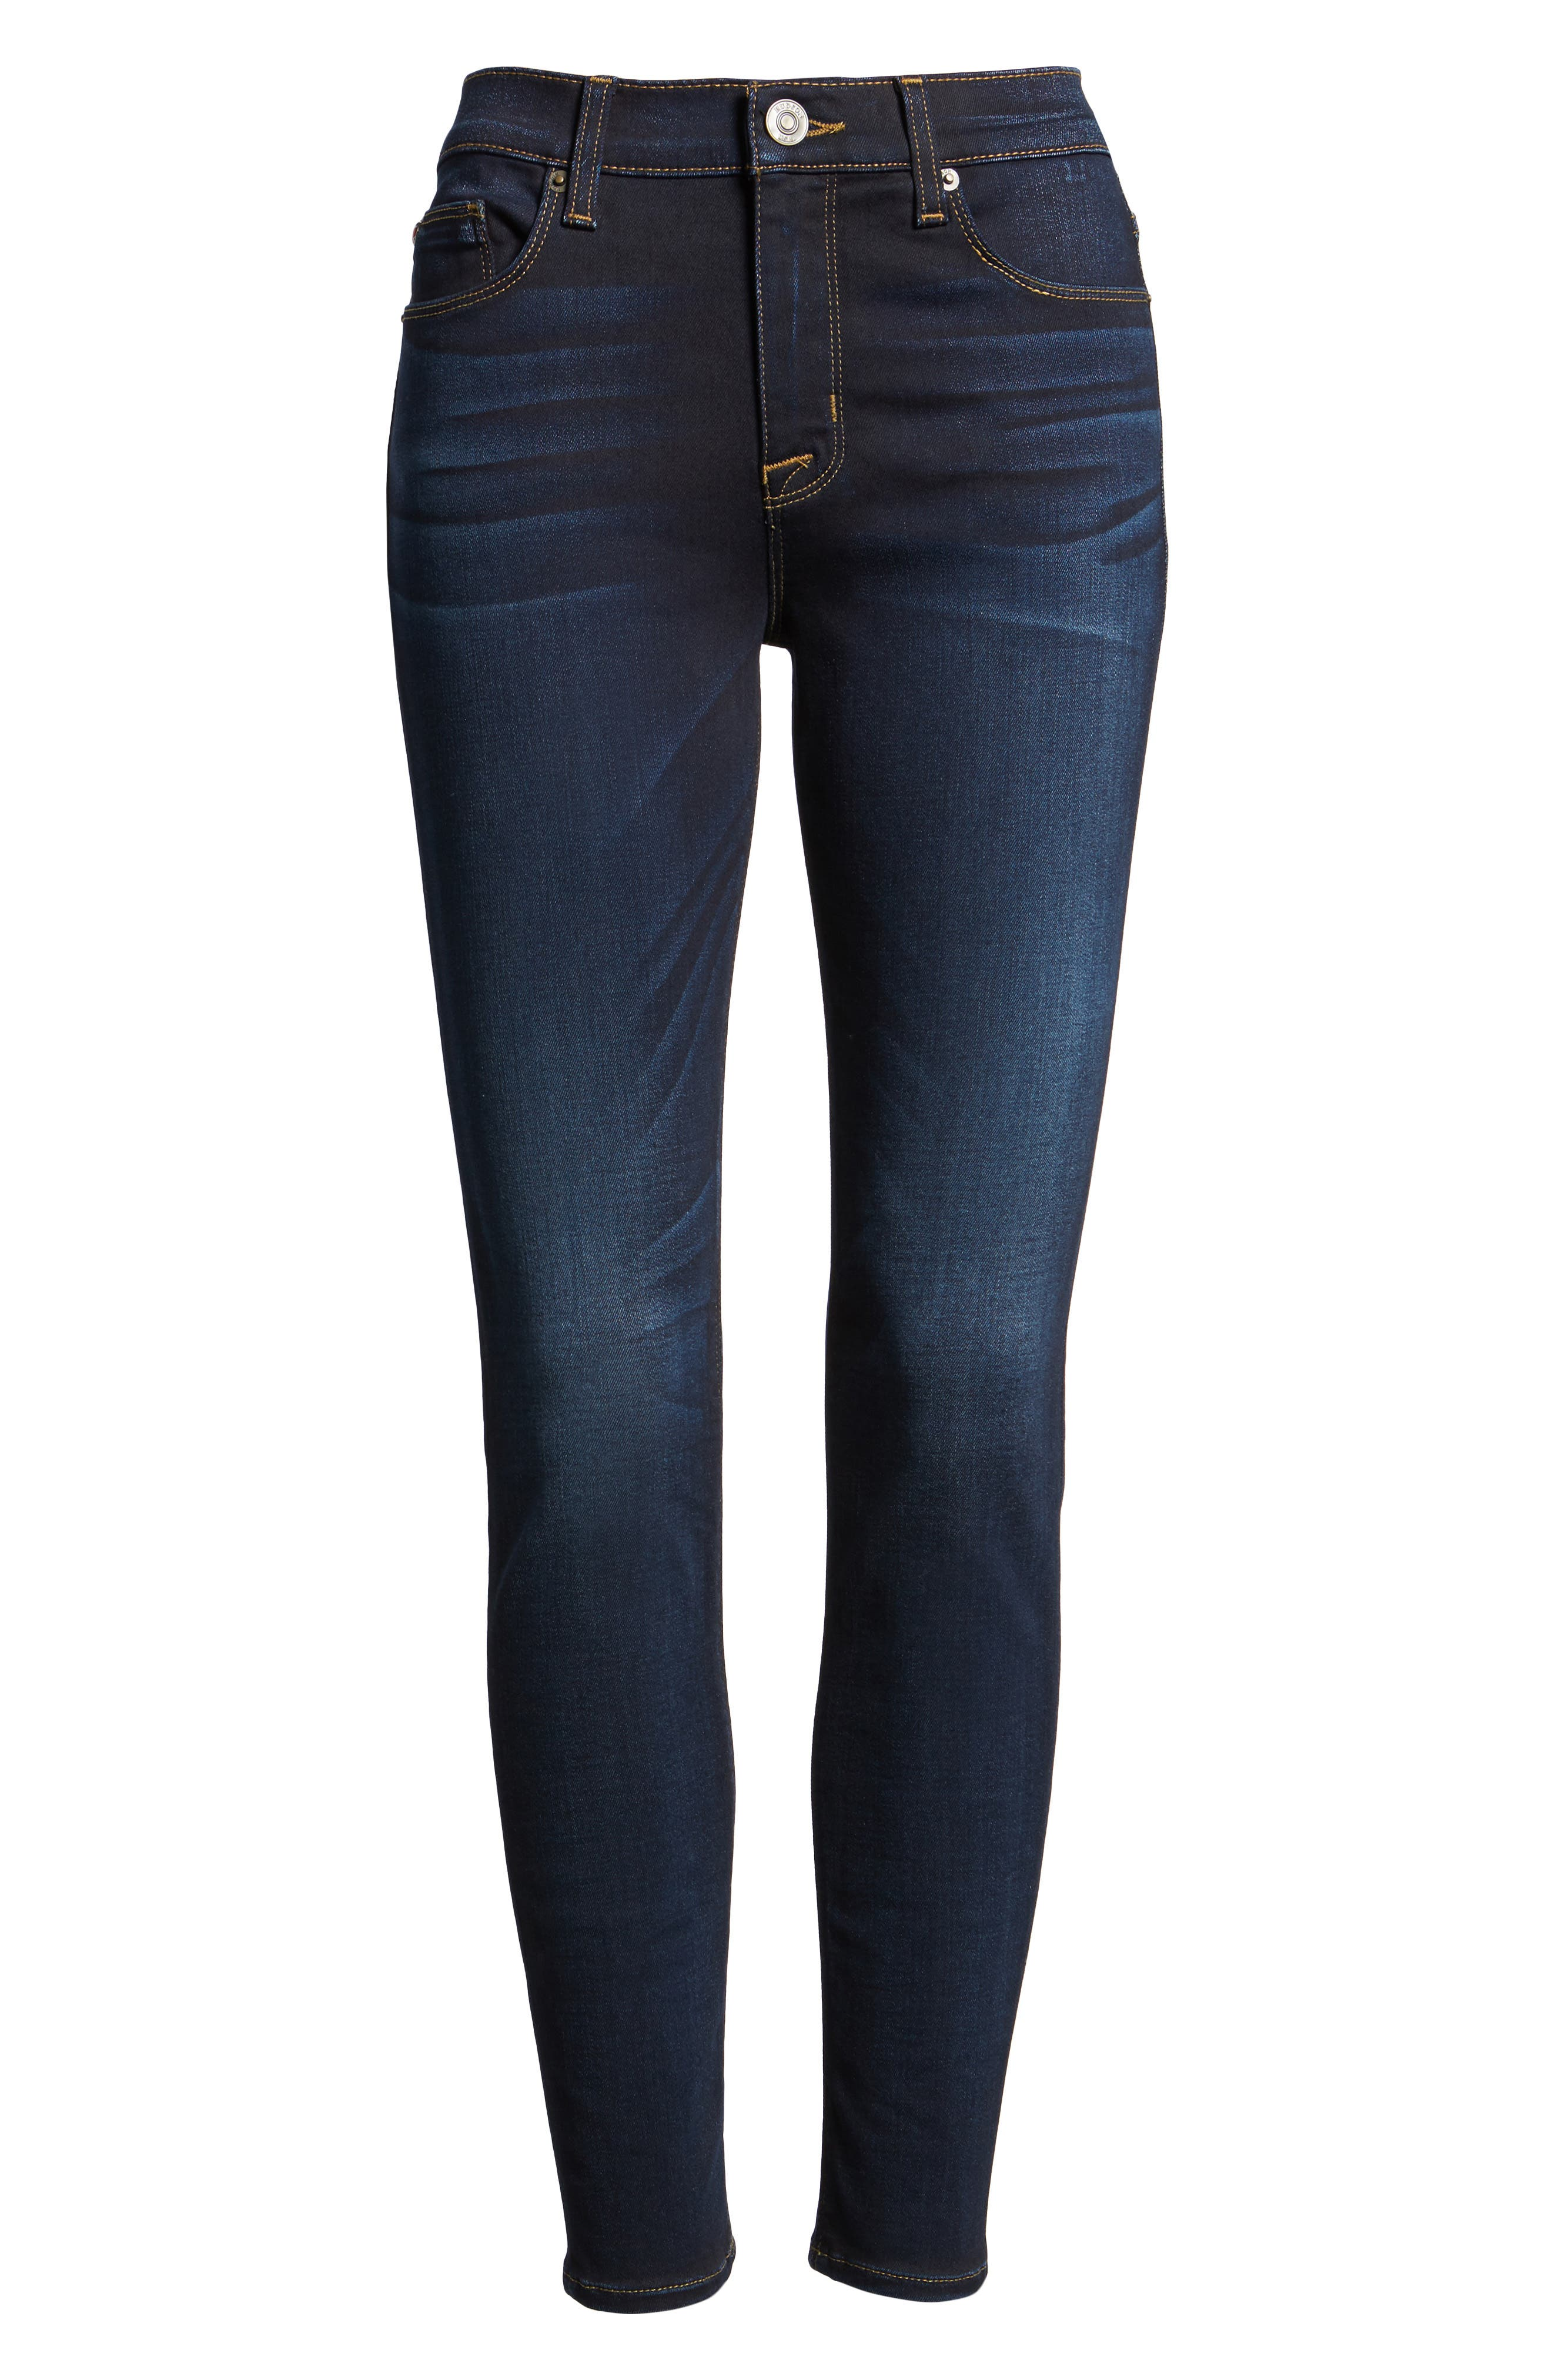 'Nico' Ankle Skinny Jeans,                             Alternate thumbnail 12, color,